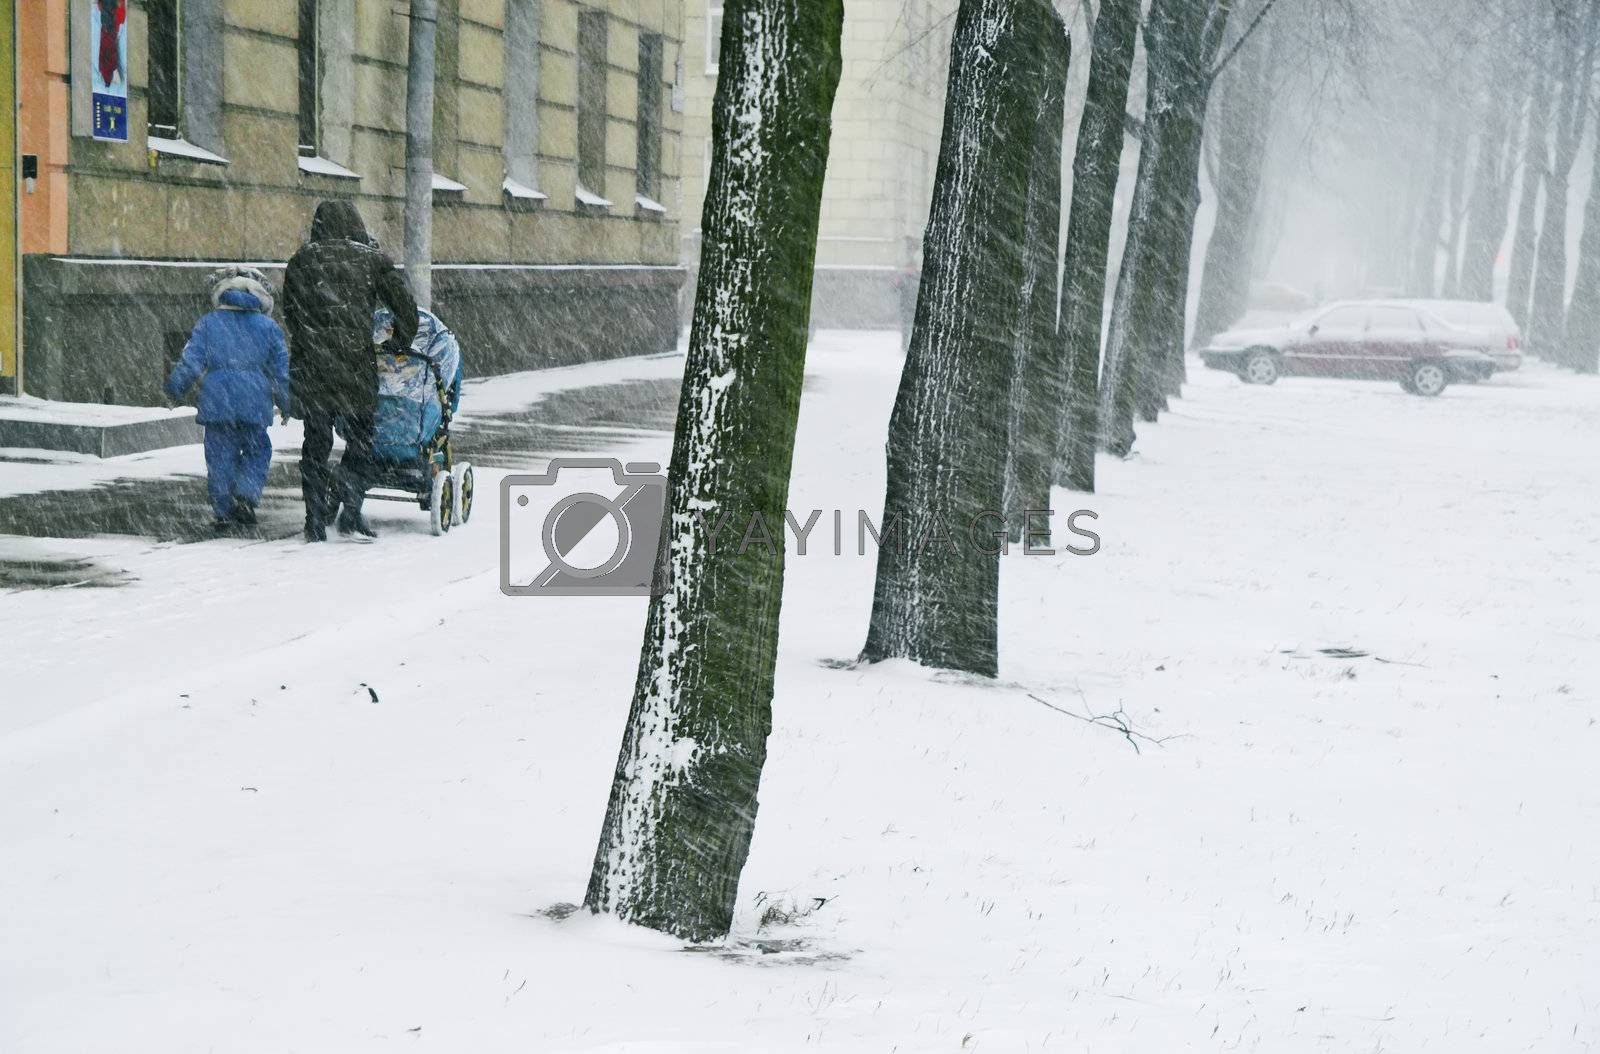 Mother with children walks along street in stormy weather